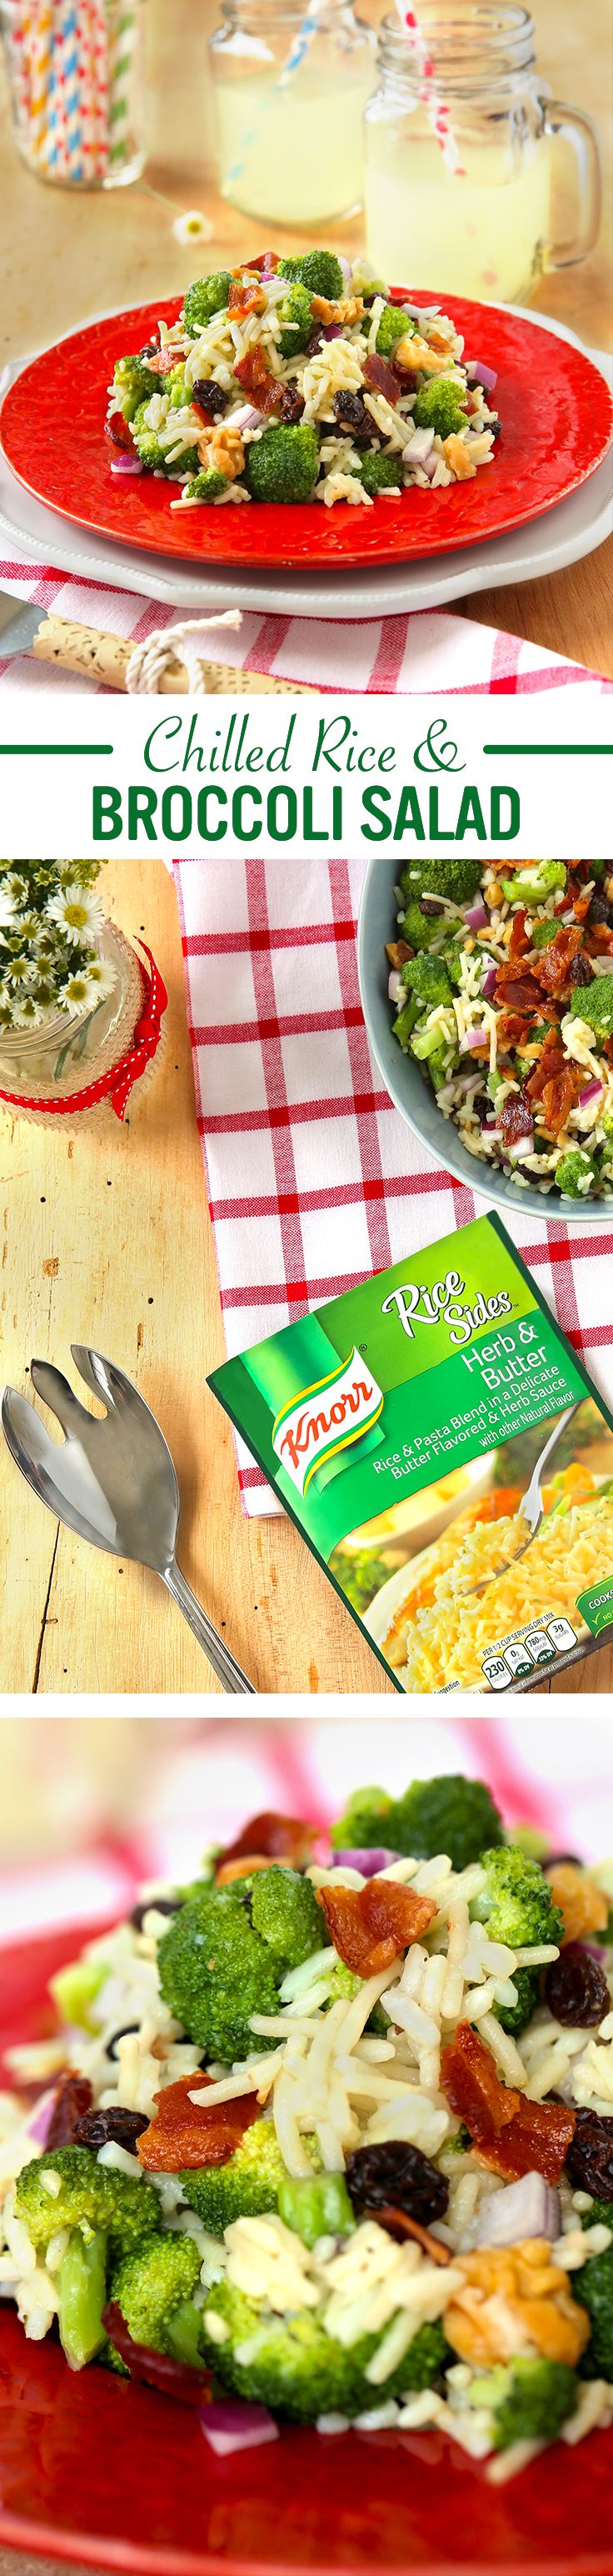 108 Best Knorr Recipes Images On Pinterest Kitchens